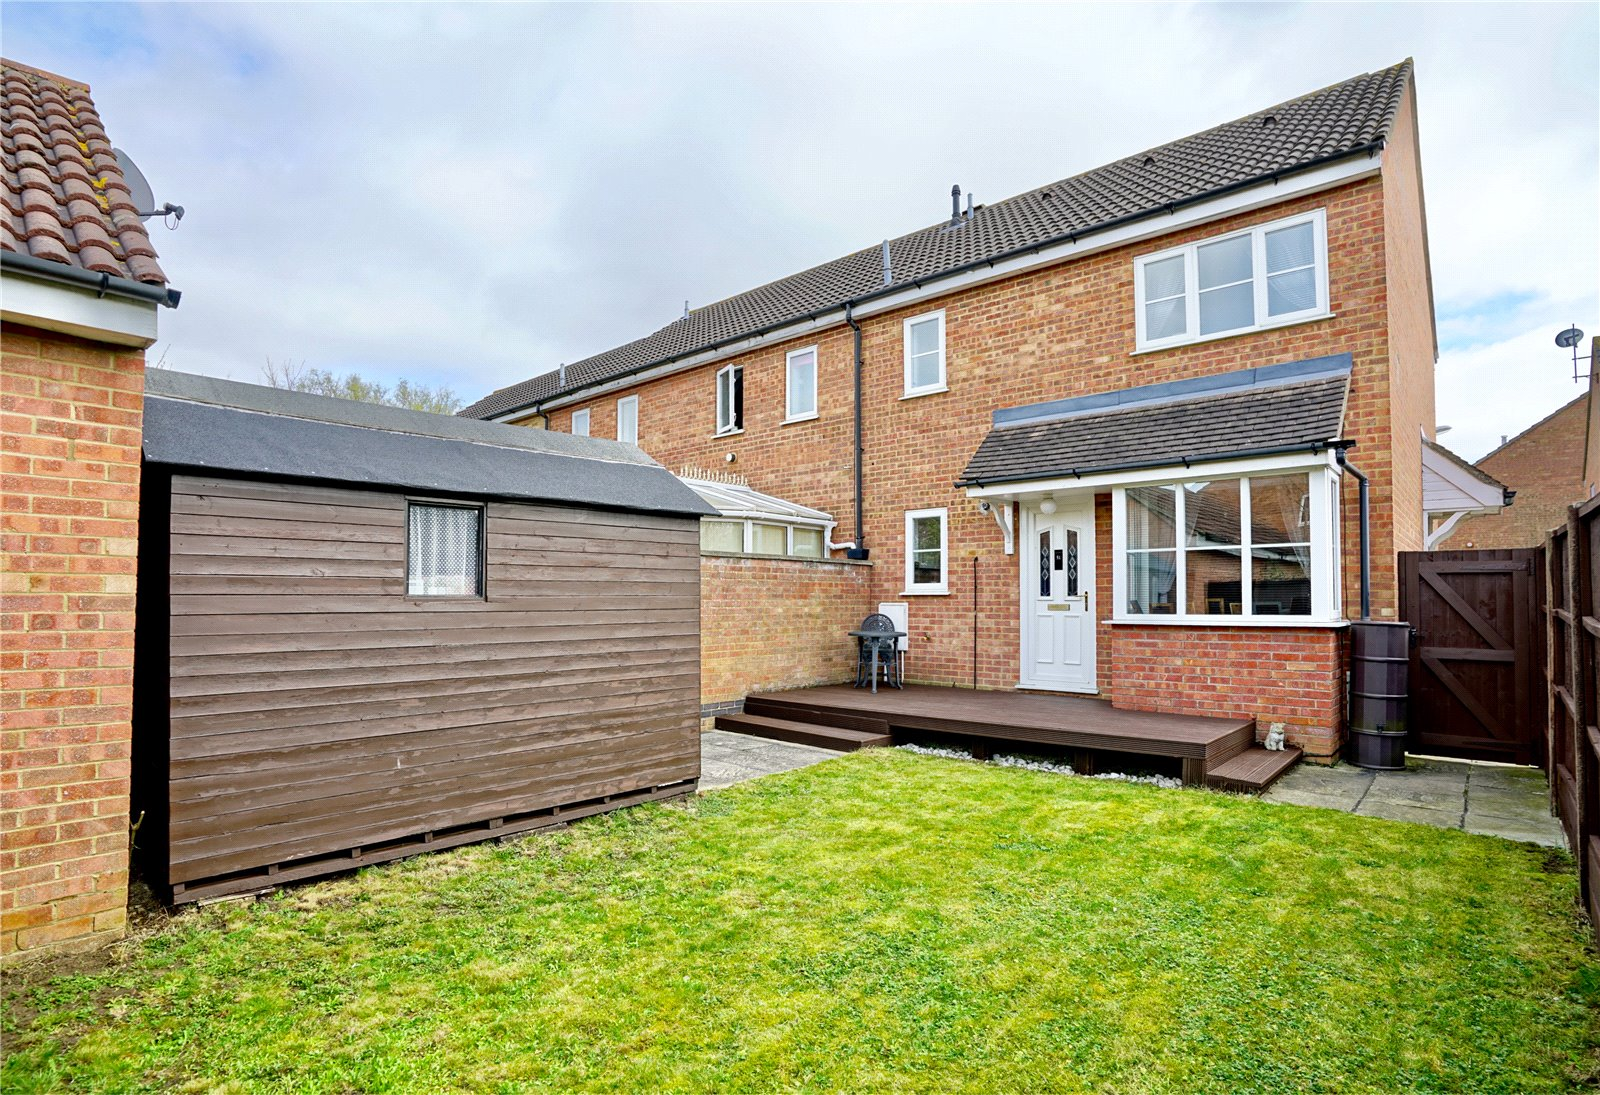 1 bed house for sale in Begwary Close, Eaton Socon  - Property Image 5